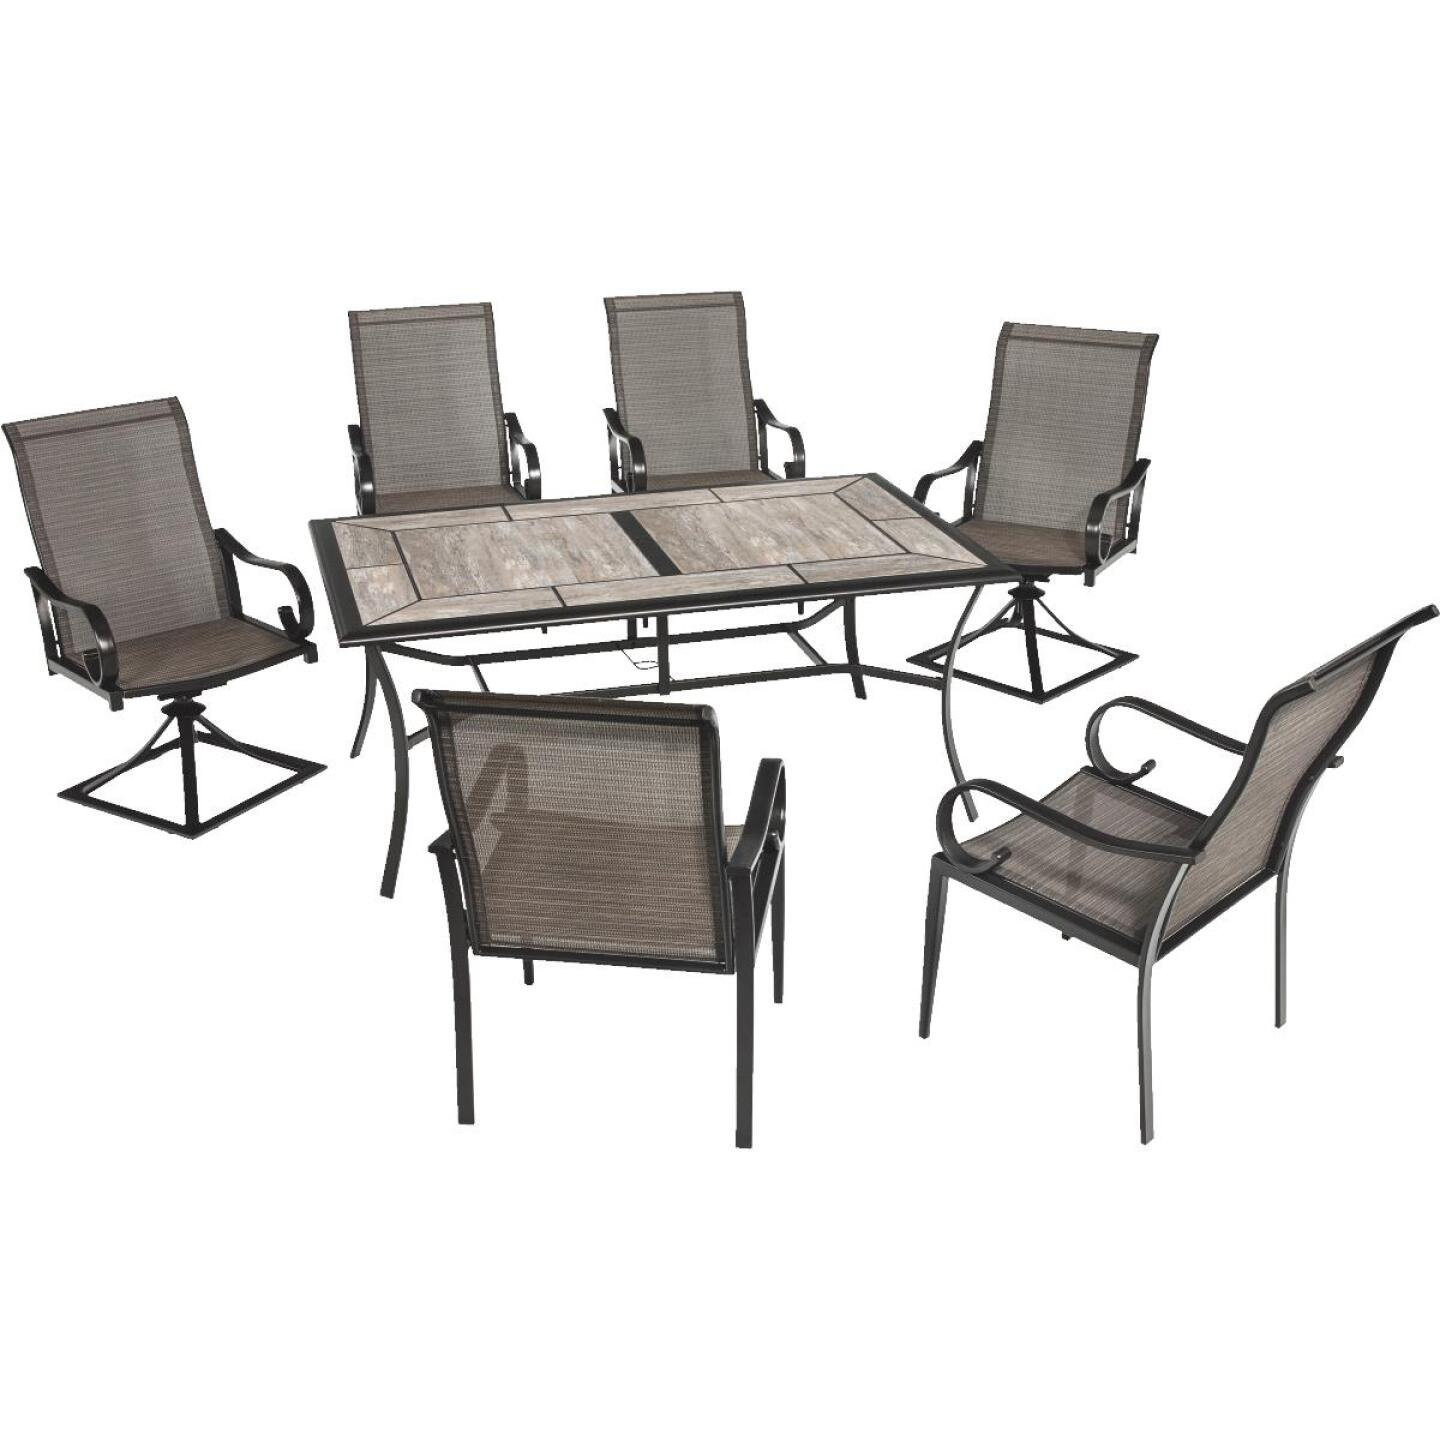 Outdoor Expressions Berkshire 7-Piece Dining Set Image 36